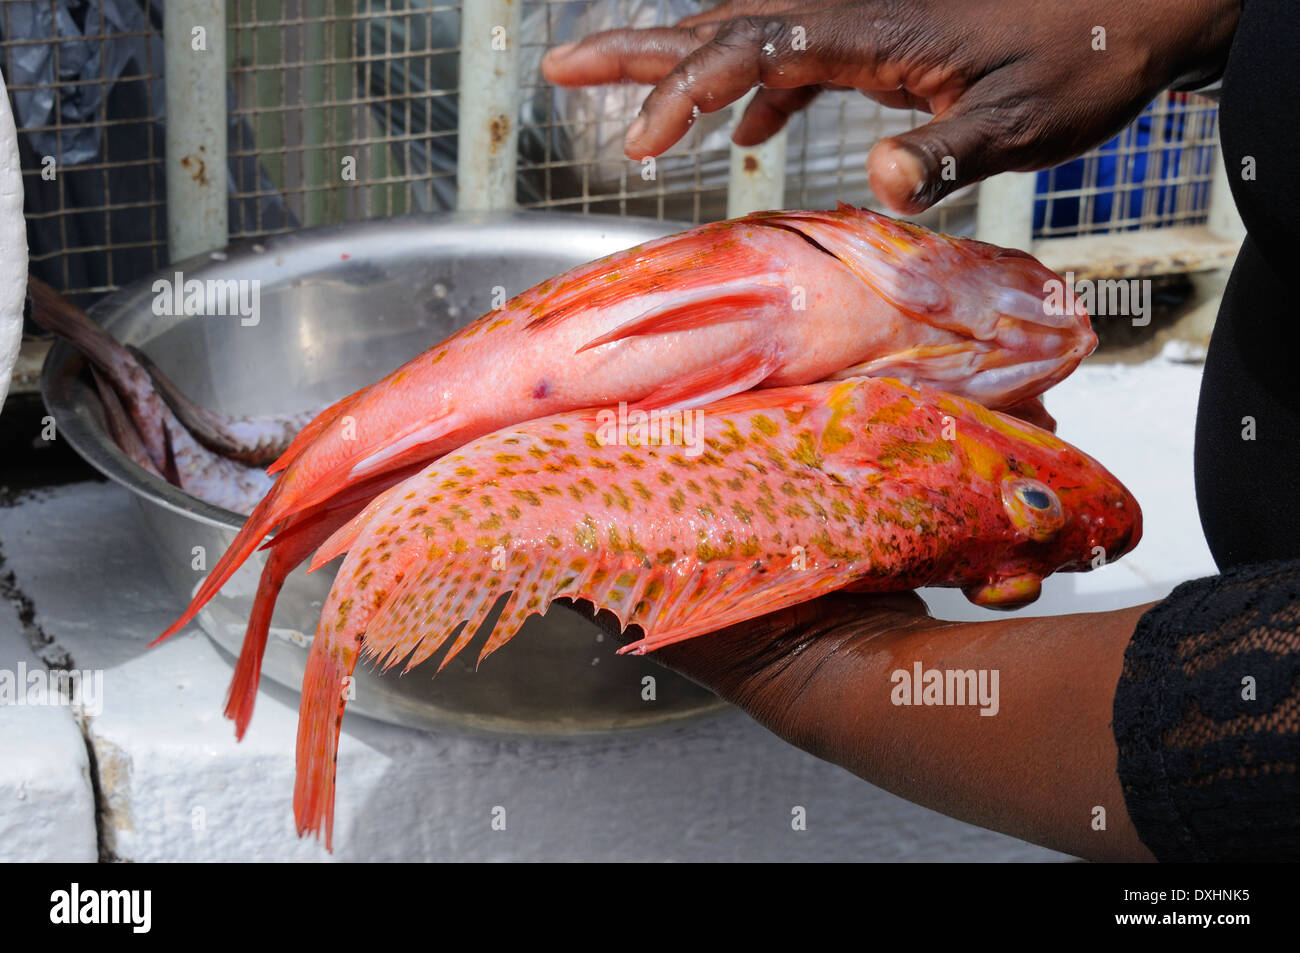 Brightly Coloured Fish Stock Photos & Brightly Coloured Fish Stock ...